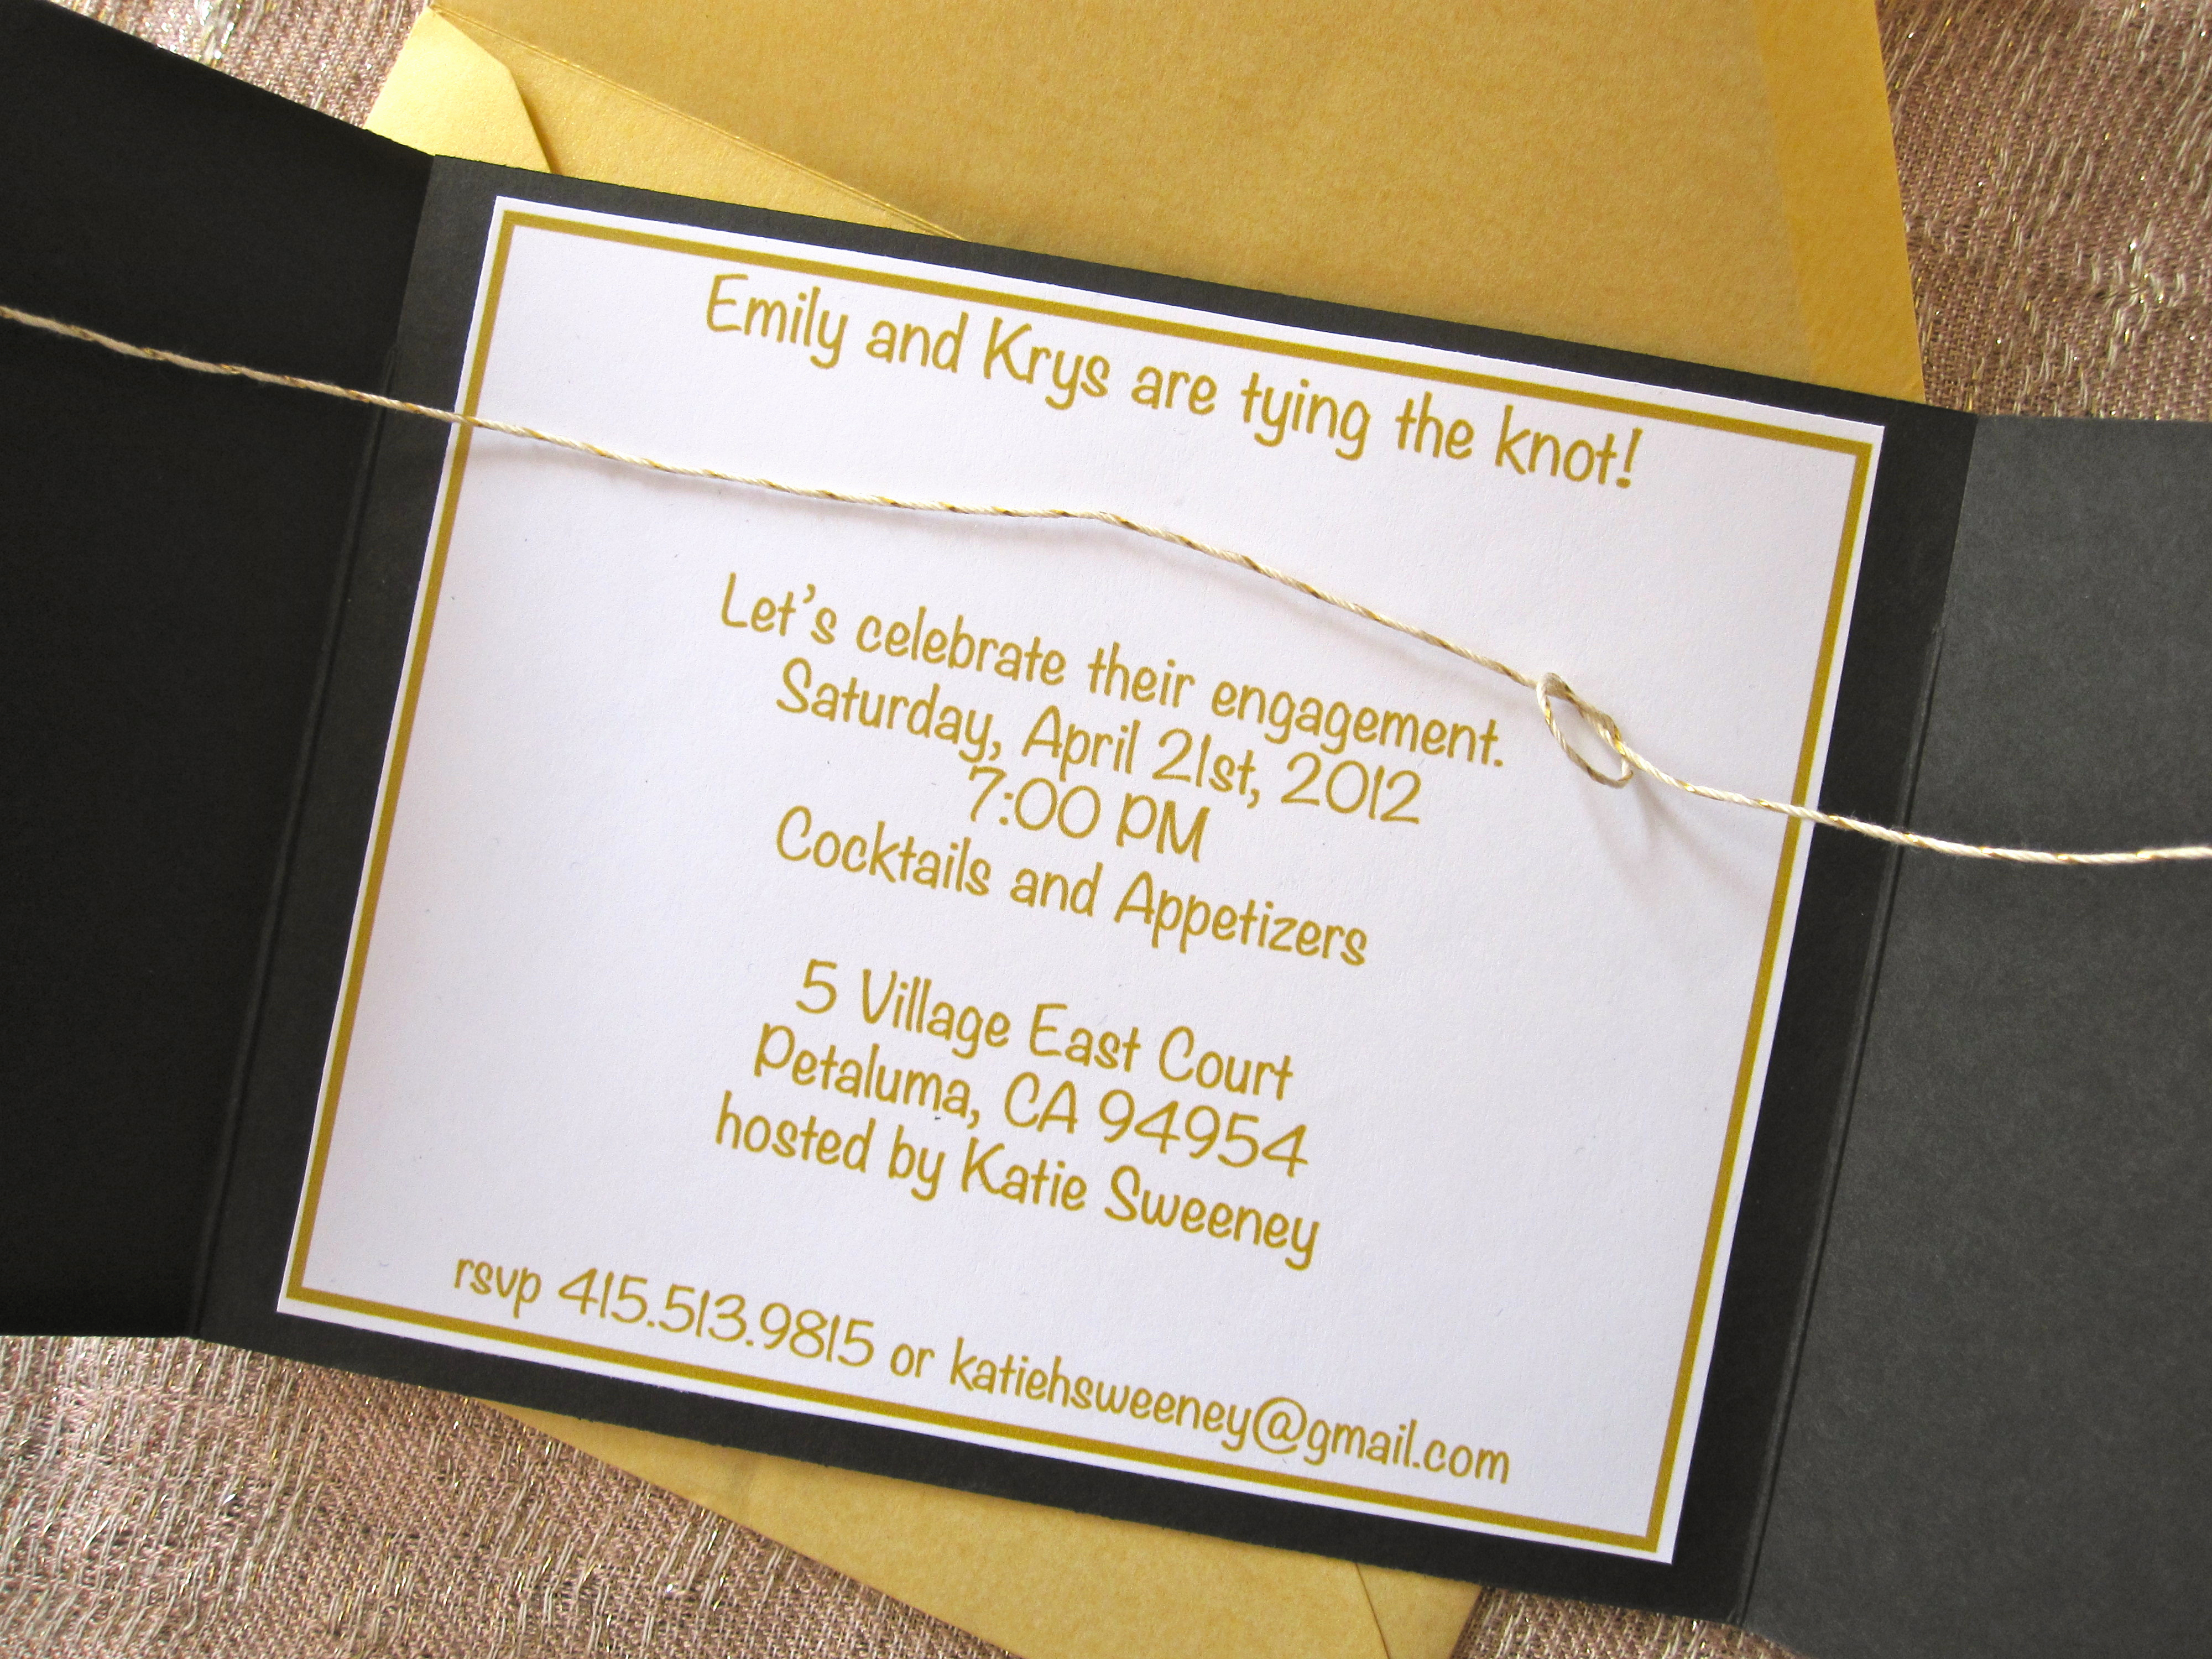 Tying the Knot Invitation Awesome How to Make Tying the Knot Engagement Party Invites